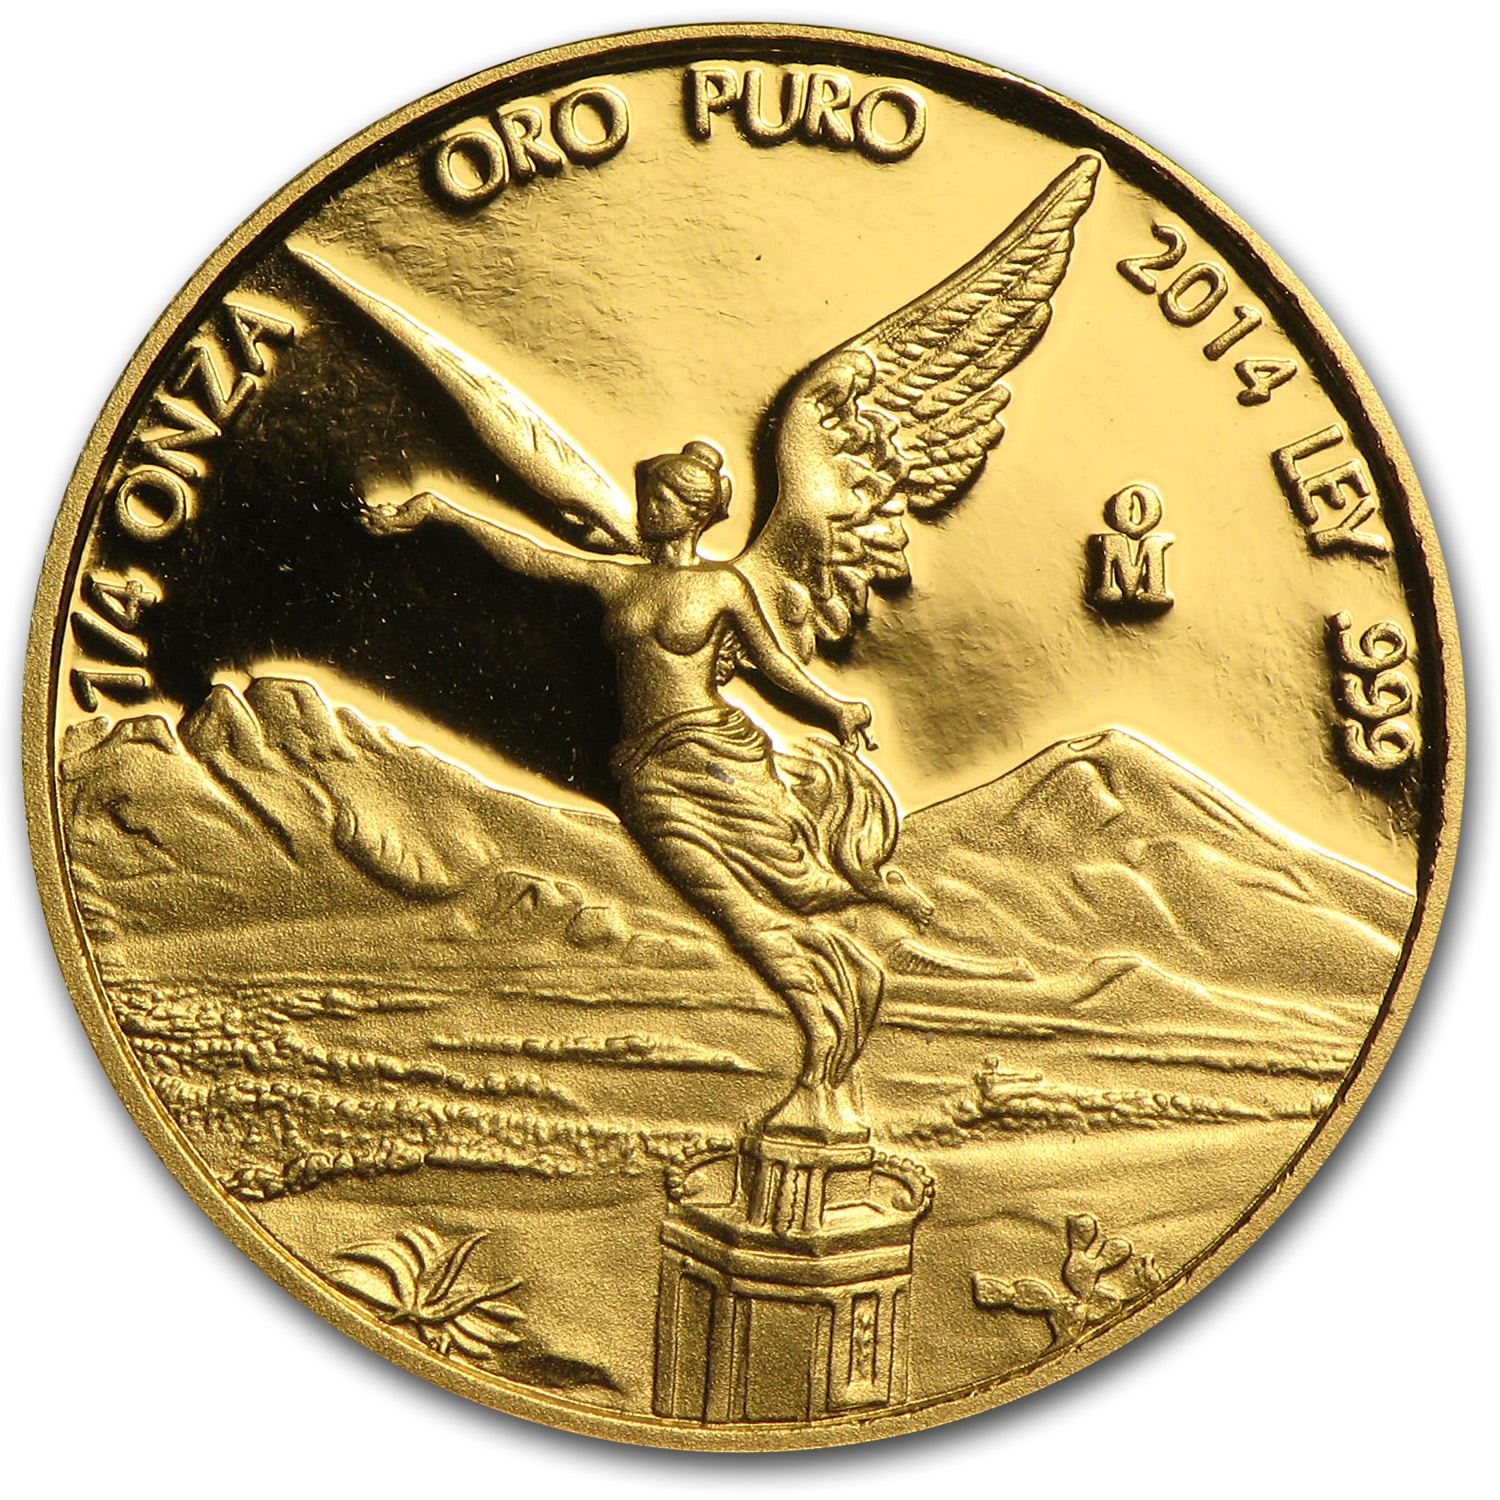 2014 Mexico 1/4 oz Proof Gold Libertad